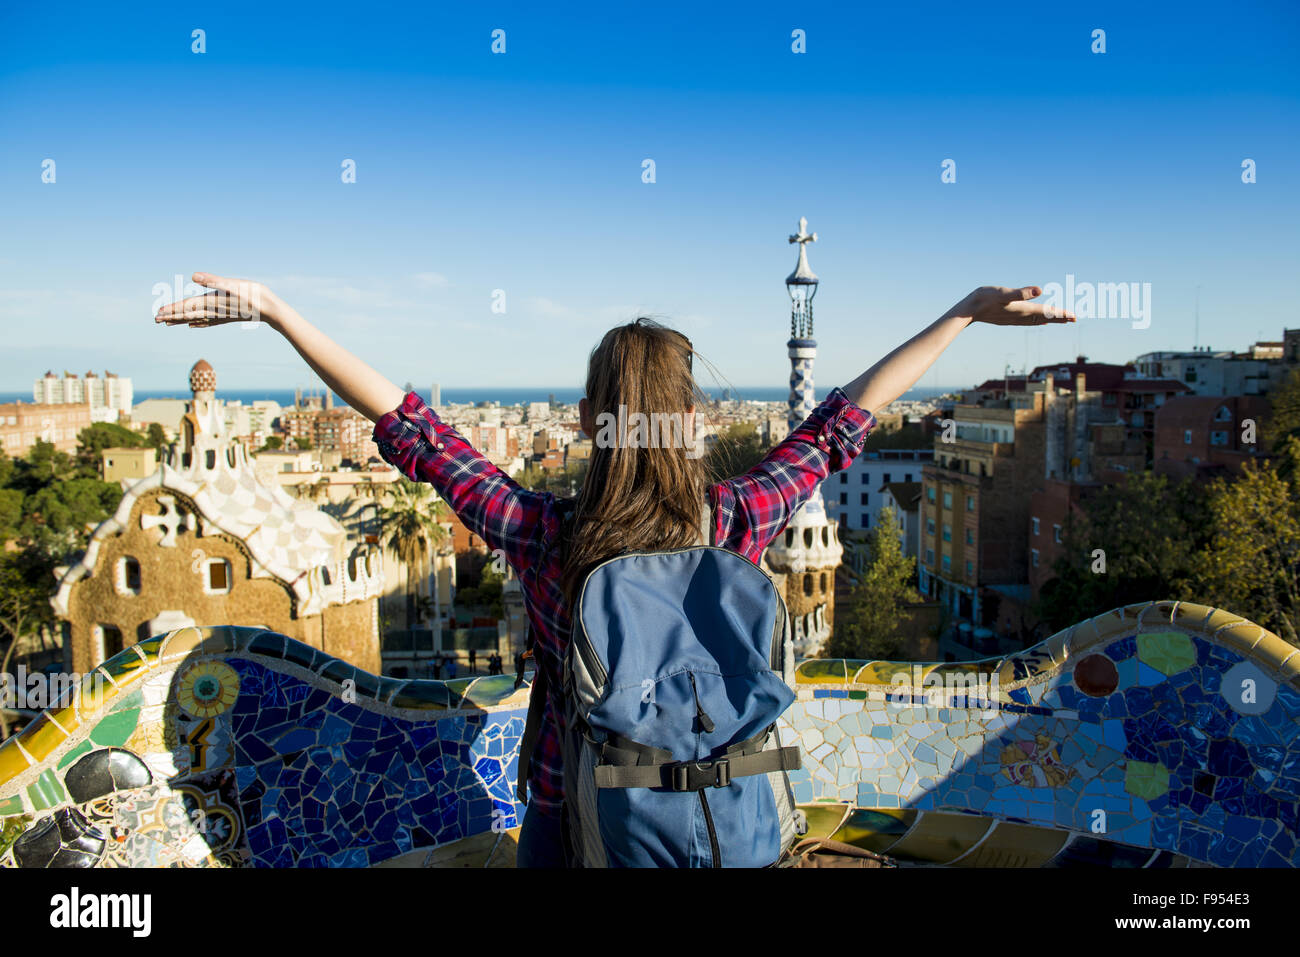 Rear view of young female tourist enjoying the view in Parc Guell in Barcelona, Spain. - Stock Image